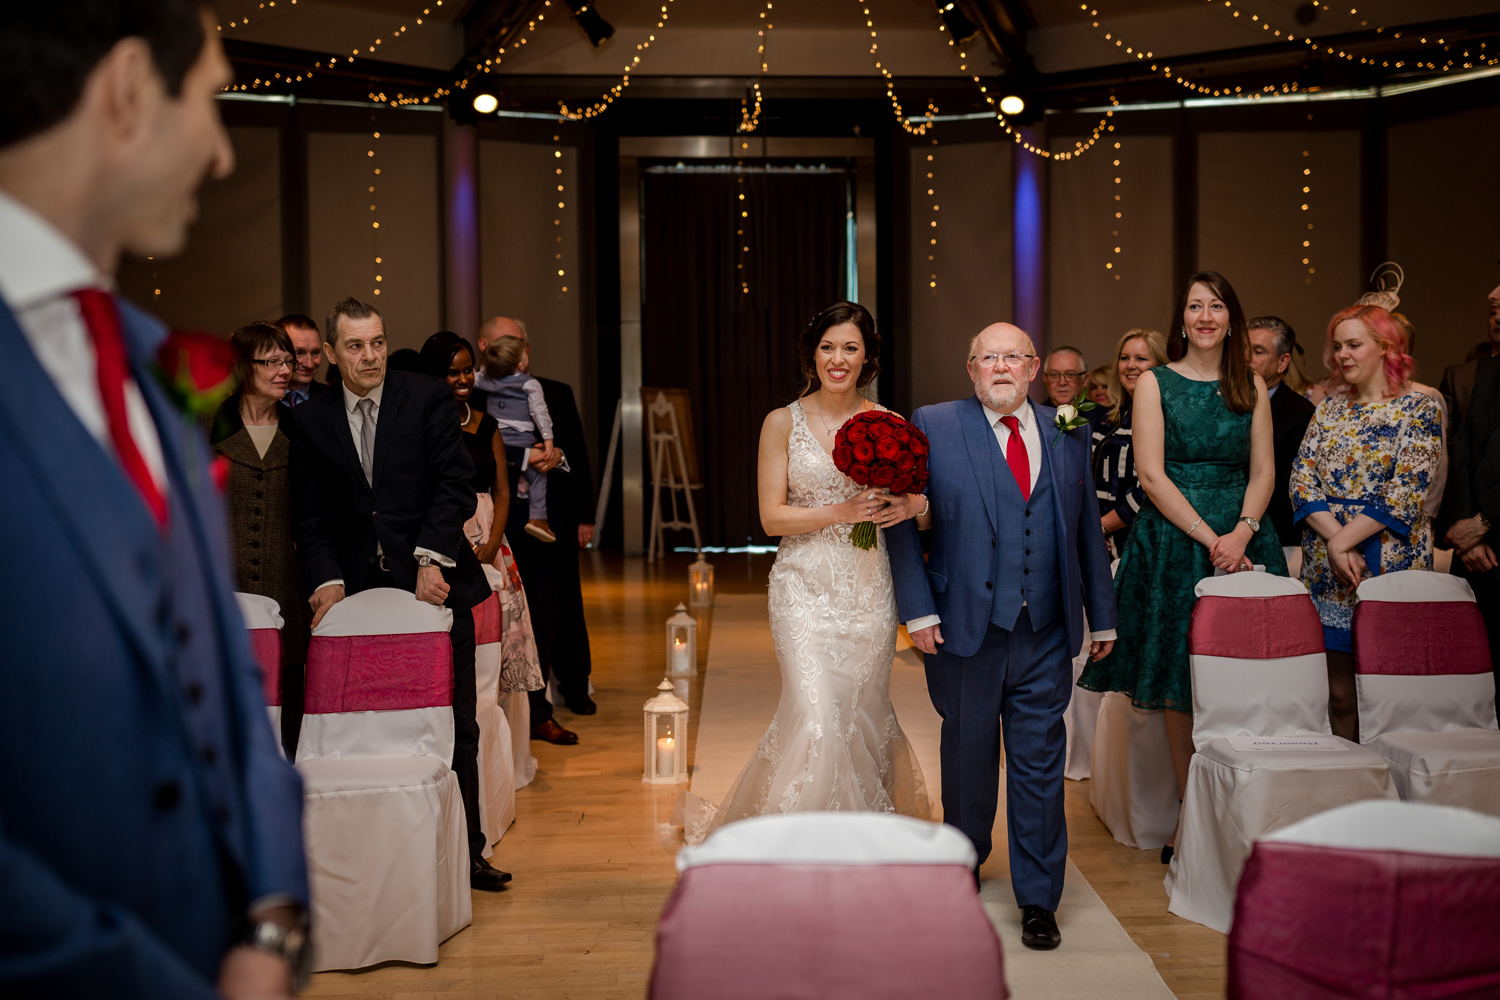 The bride walks down the aisle during her Lowry Wedding